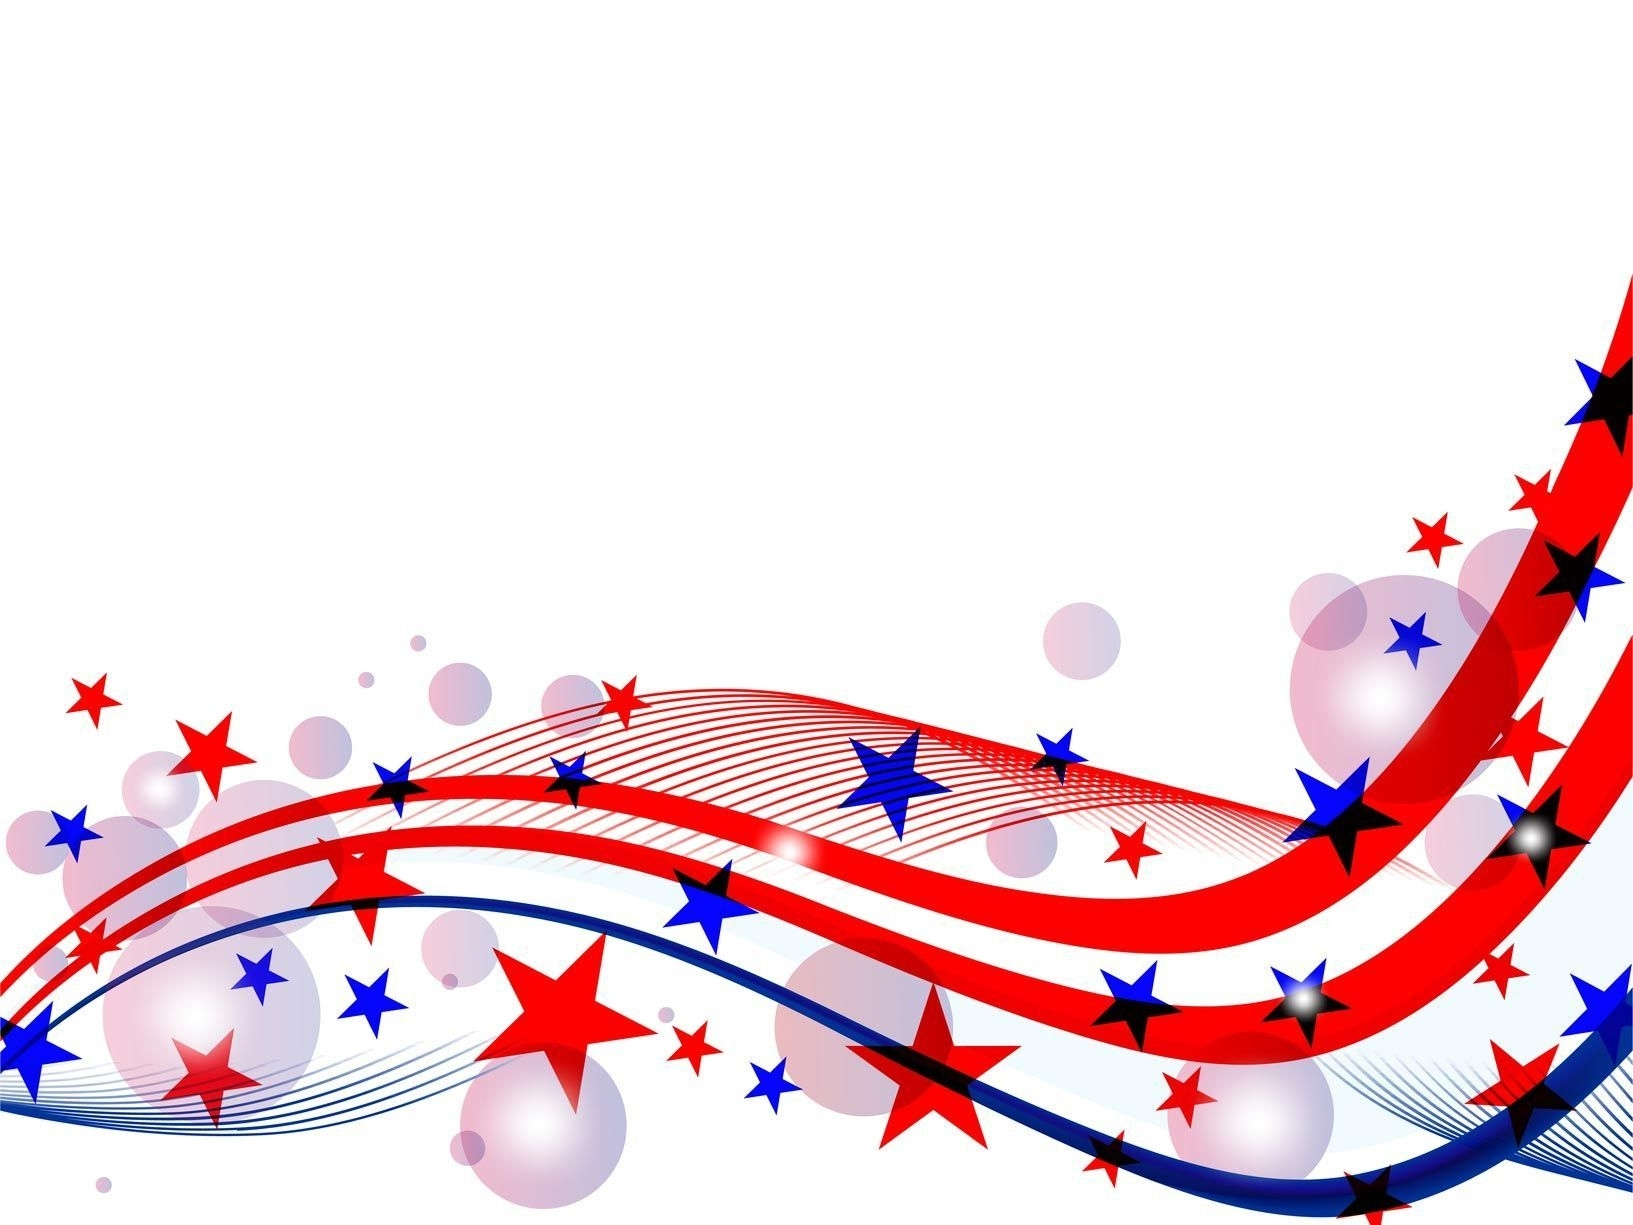 fourth of july free wallpaper, fourth of july wallpapers for desktop